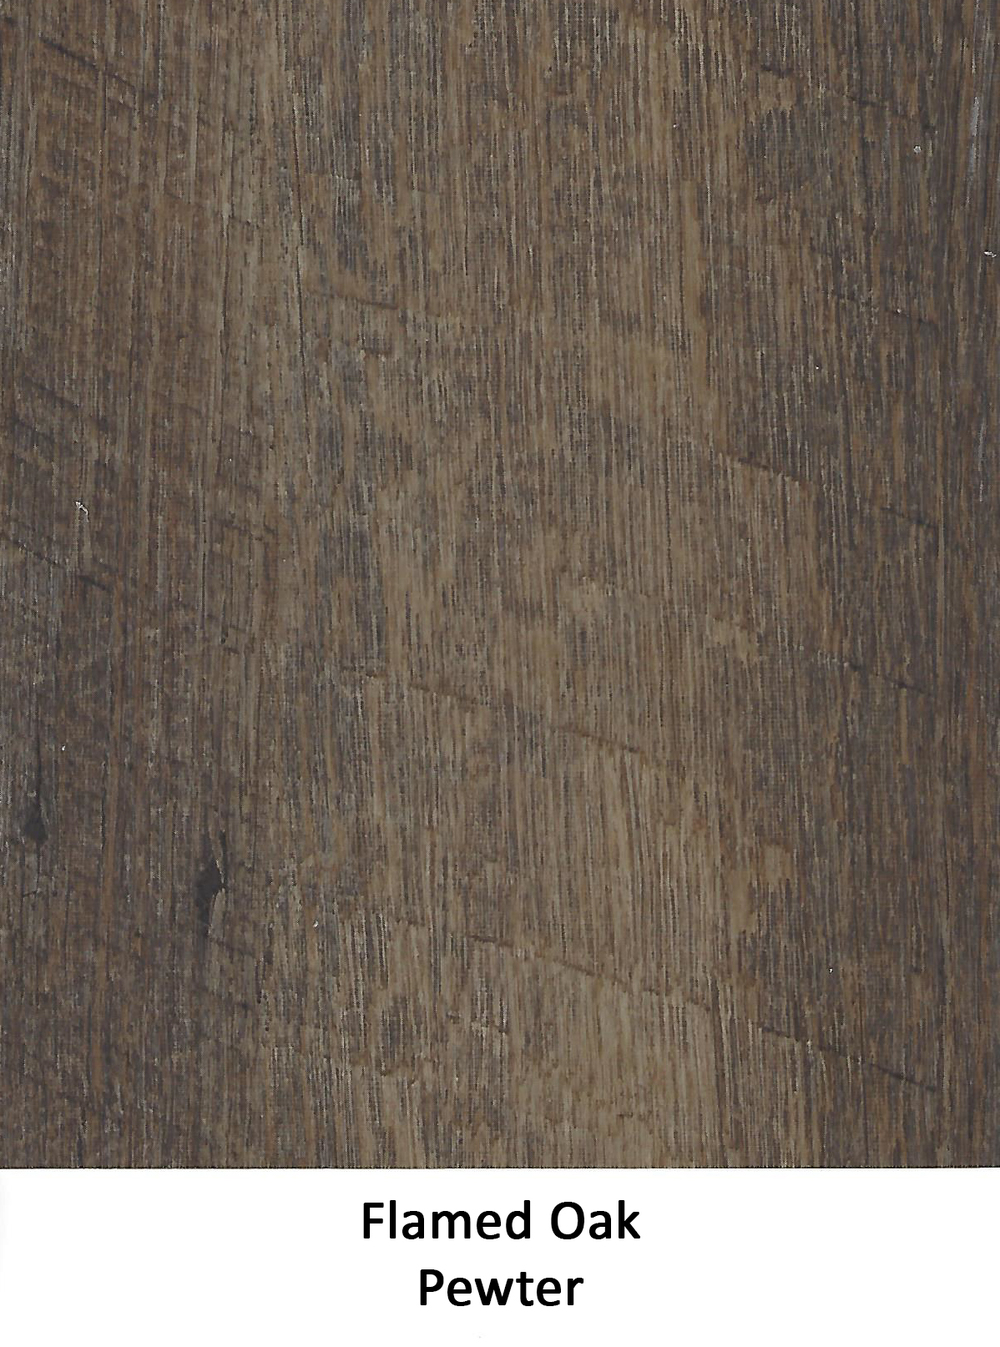 Flamed-Oak---Pewter.jpg